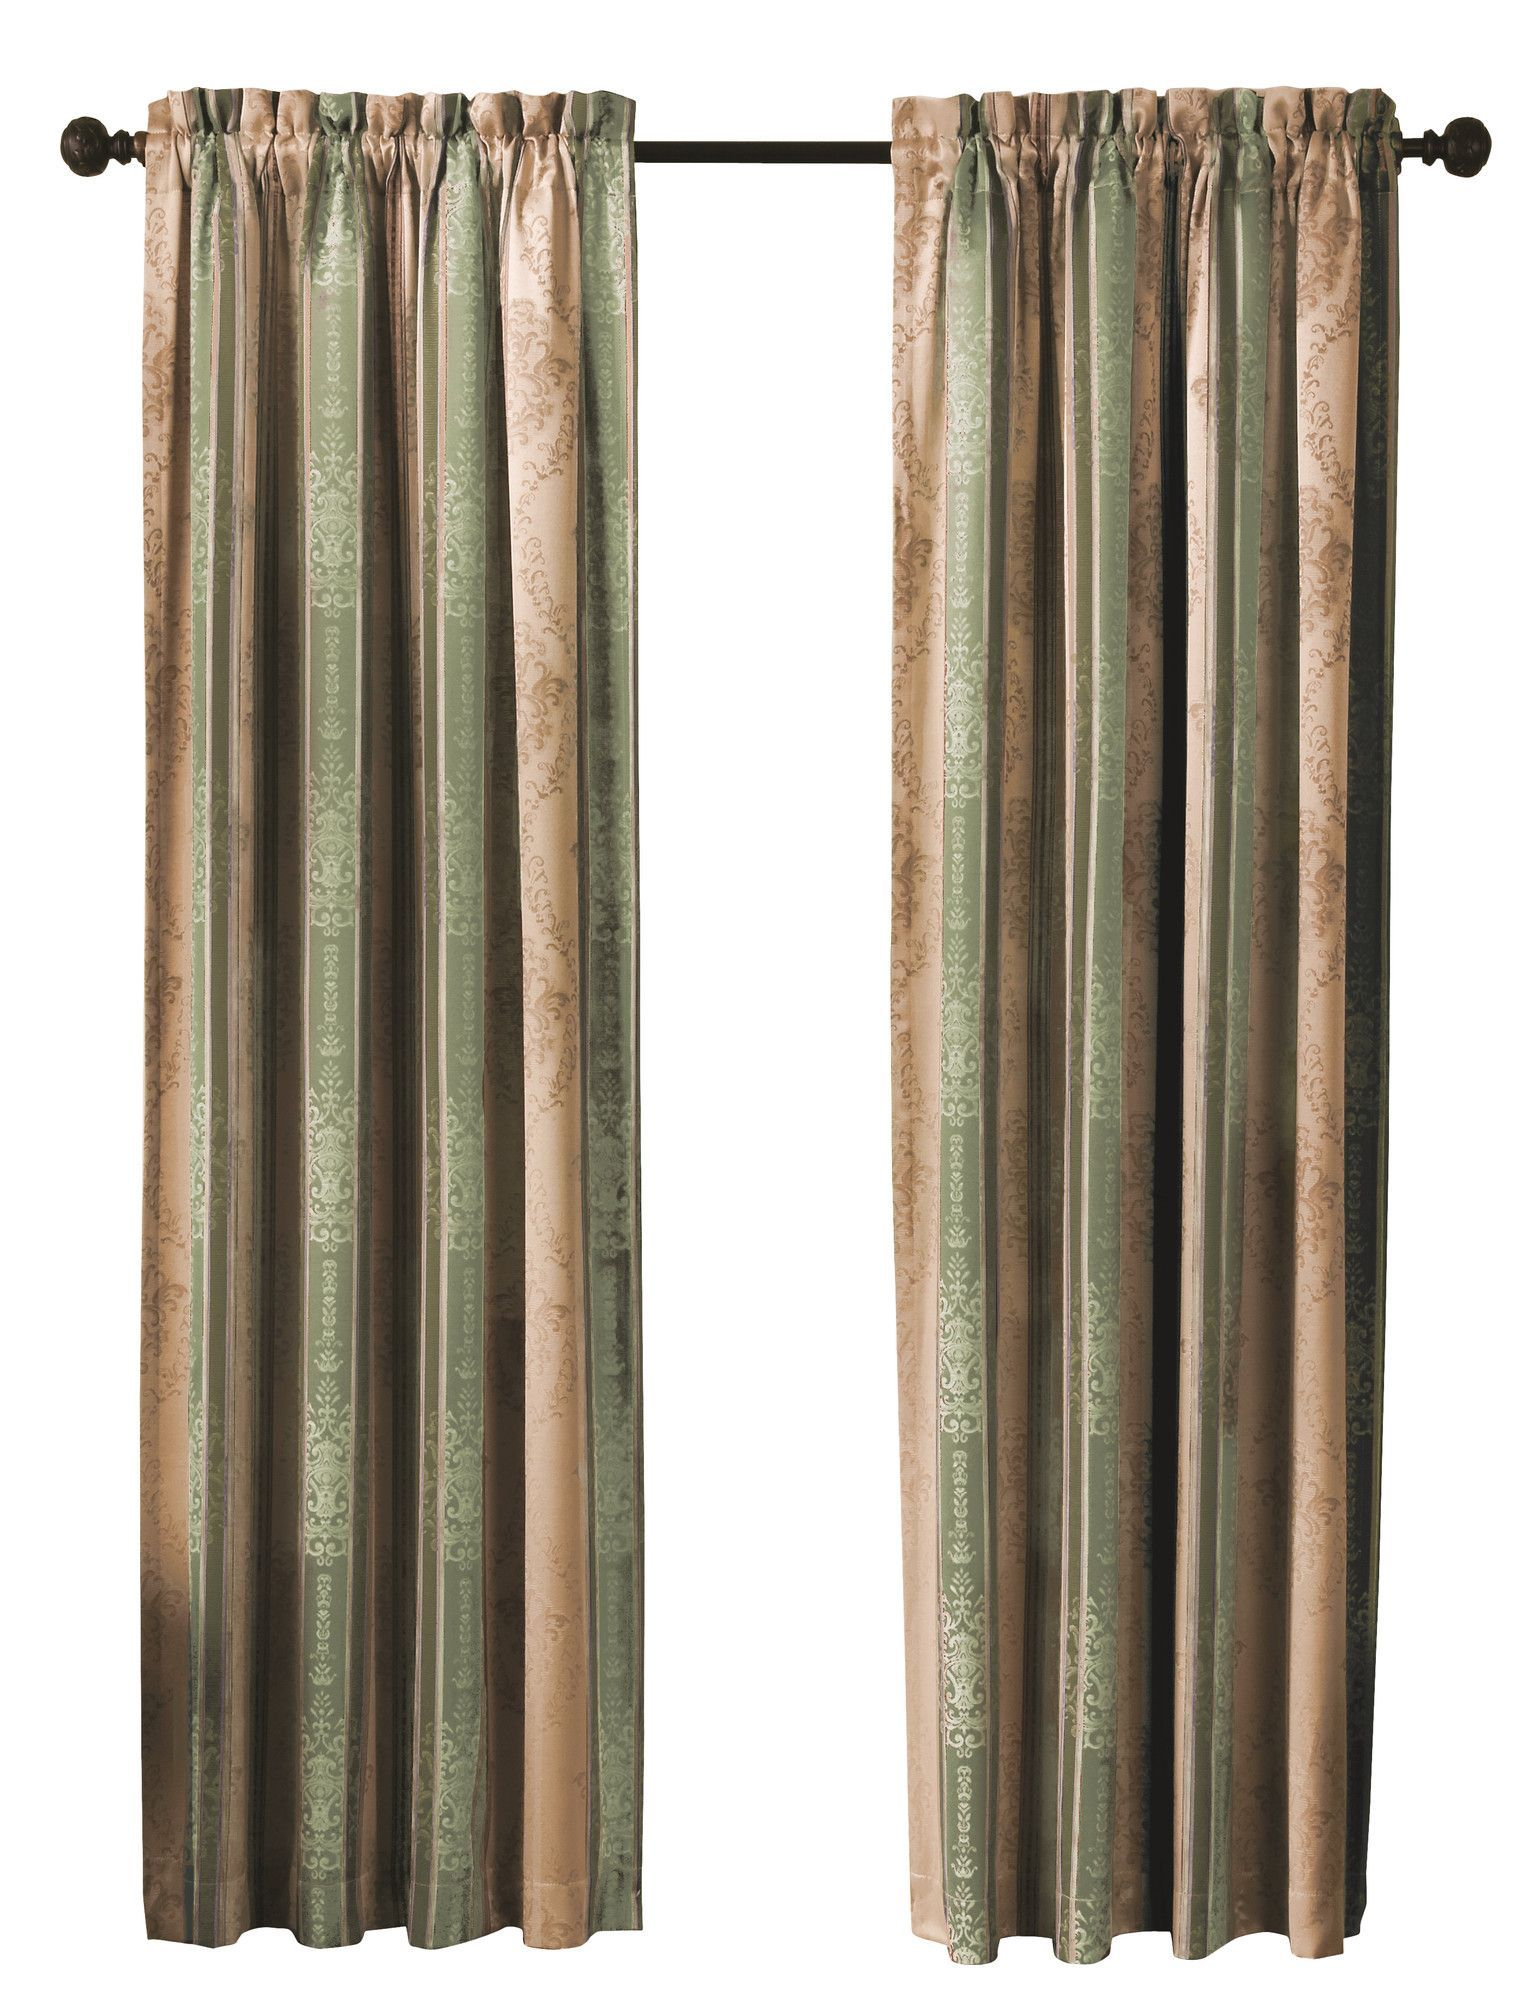 ee76bbc5ed4 Found it at Wayfair - Tuscan Curtain Panel